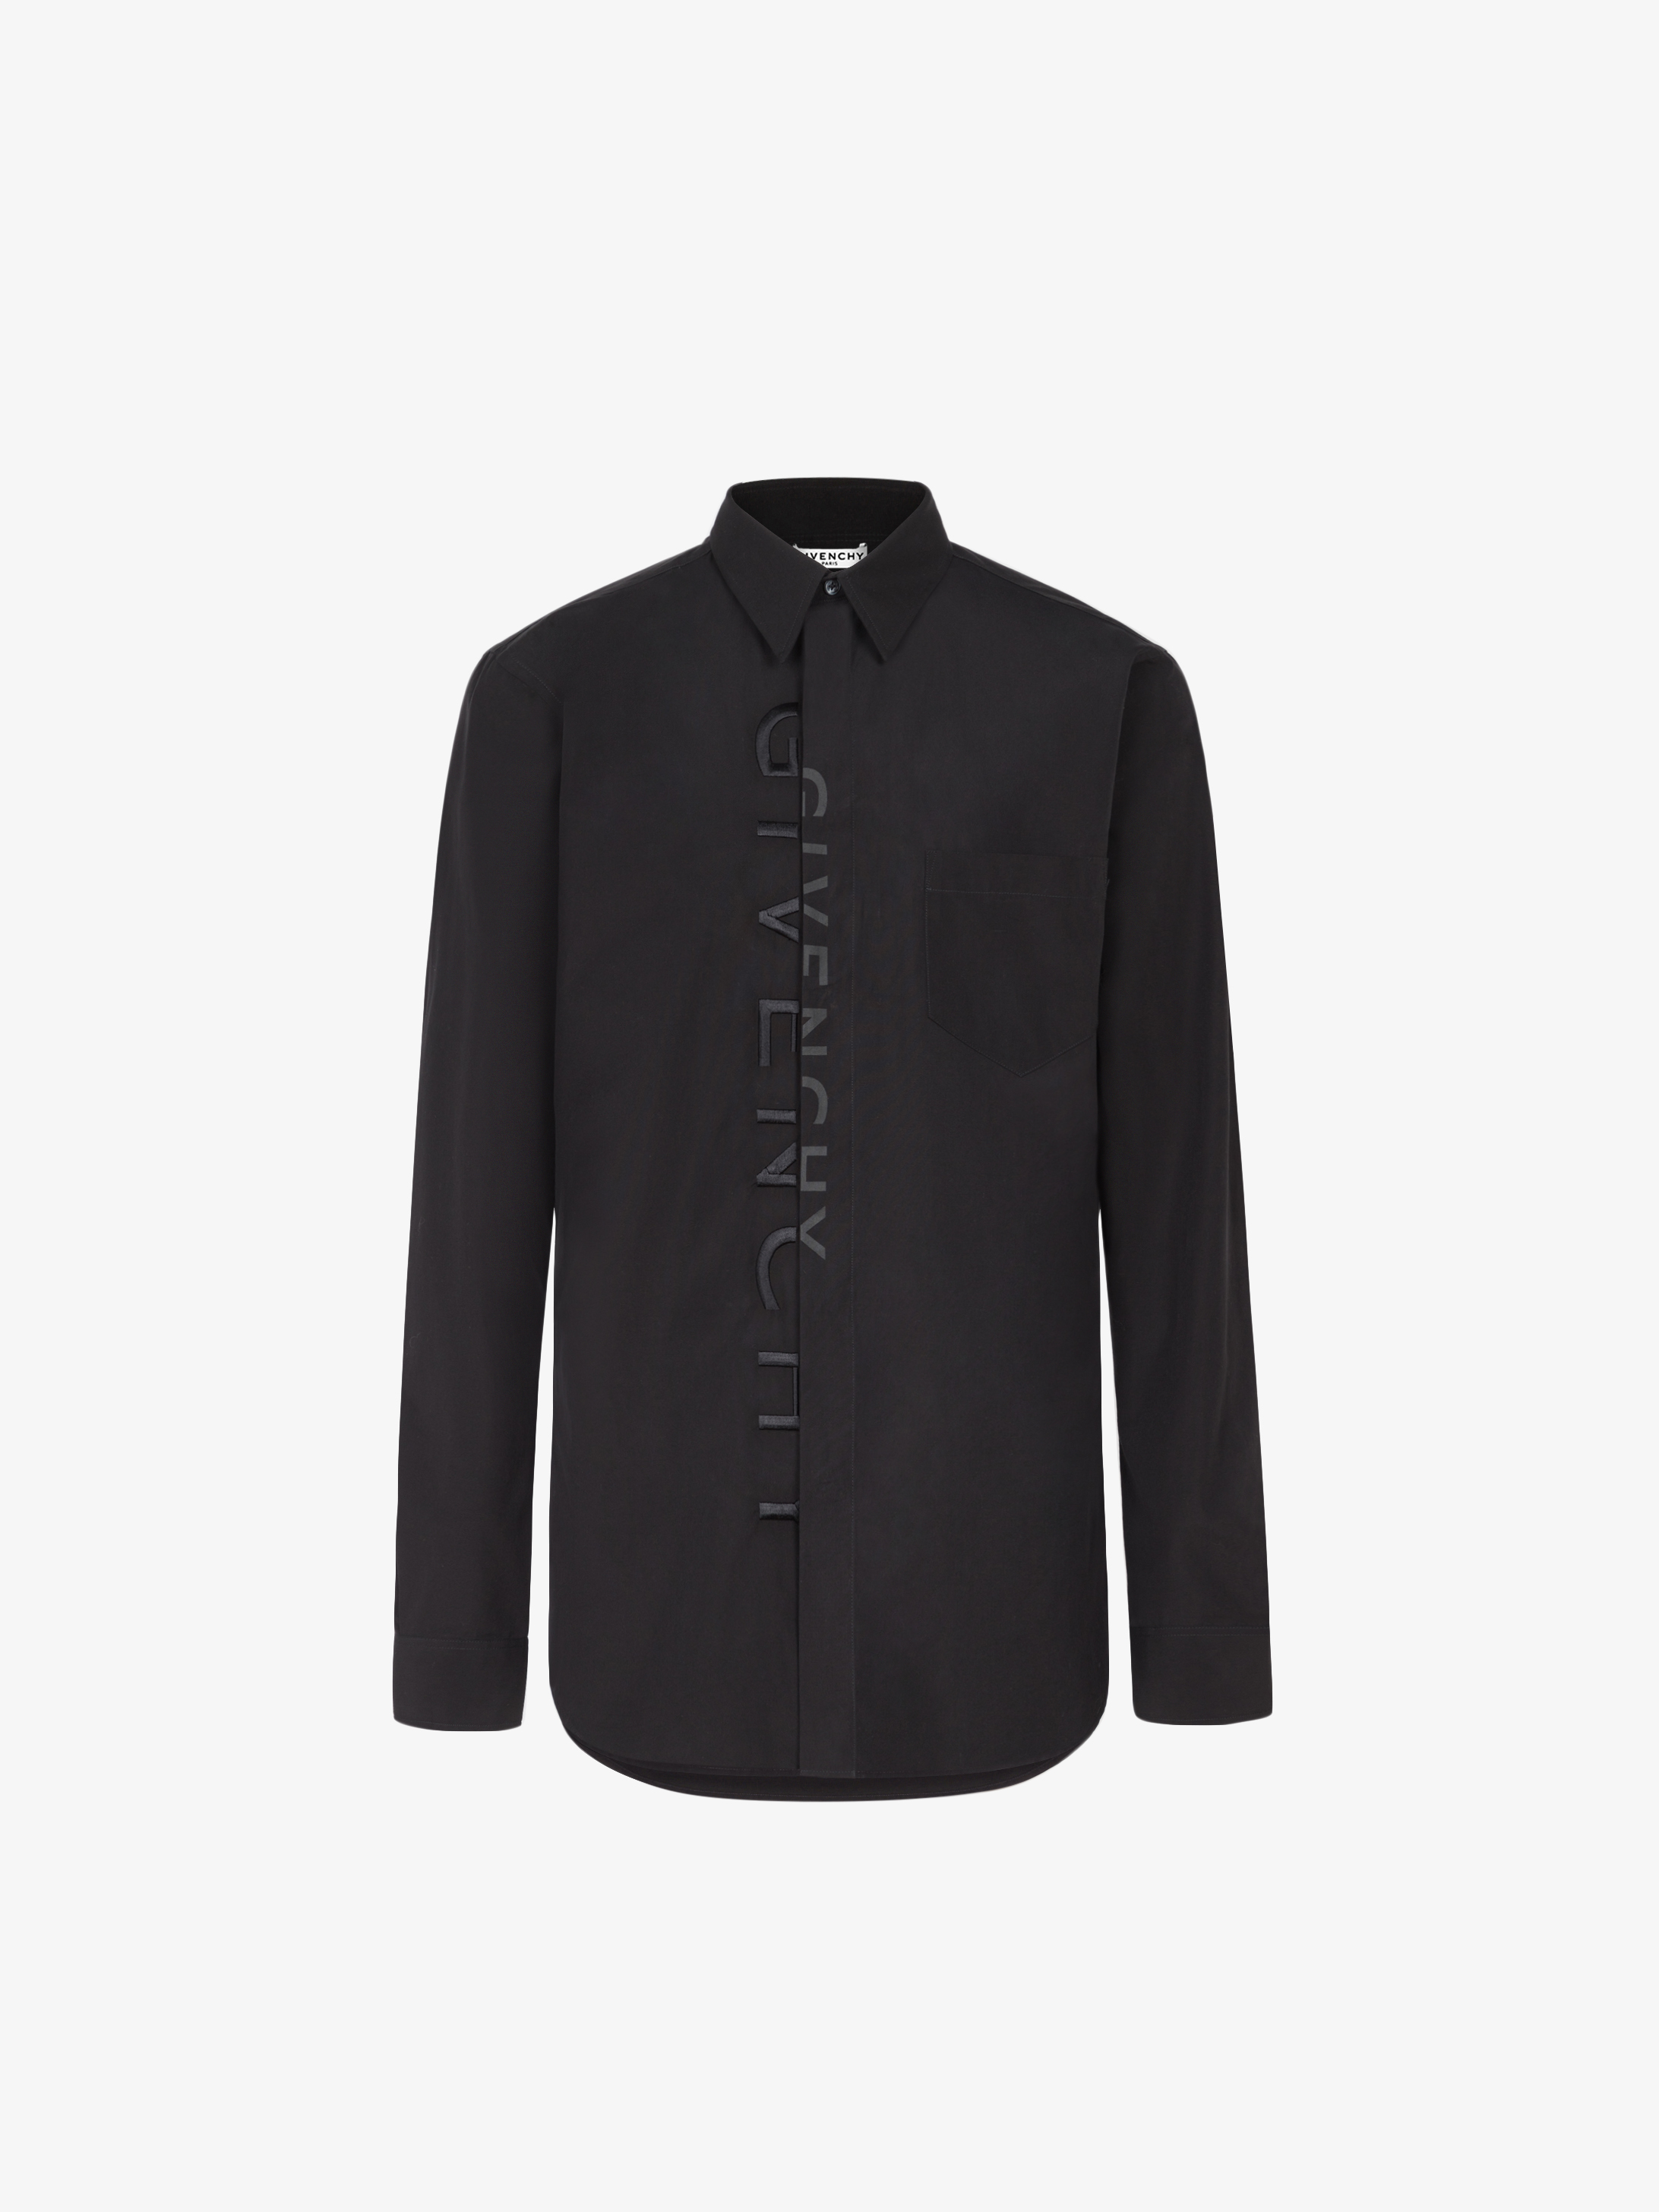 GIVENCHY Split embroidered shirt in cotton